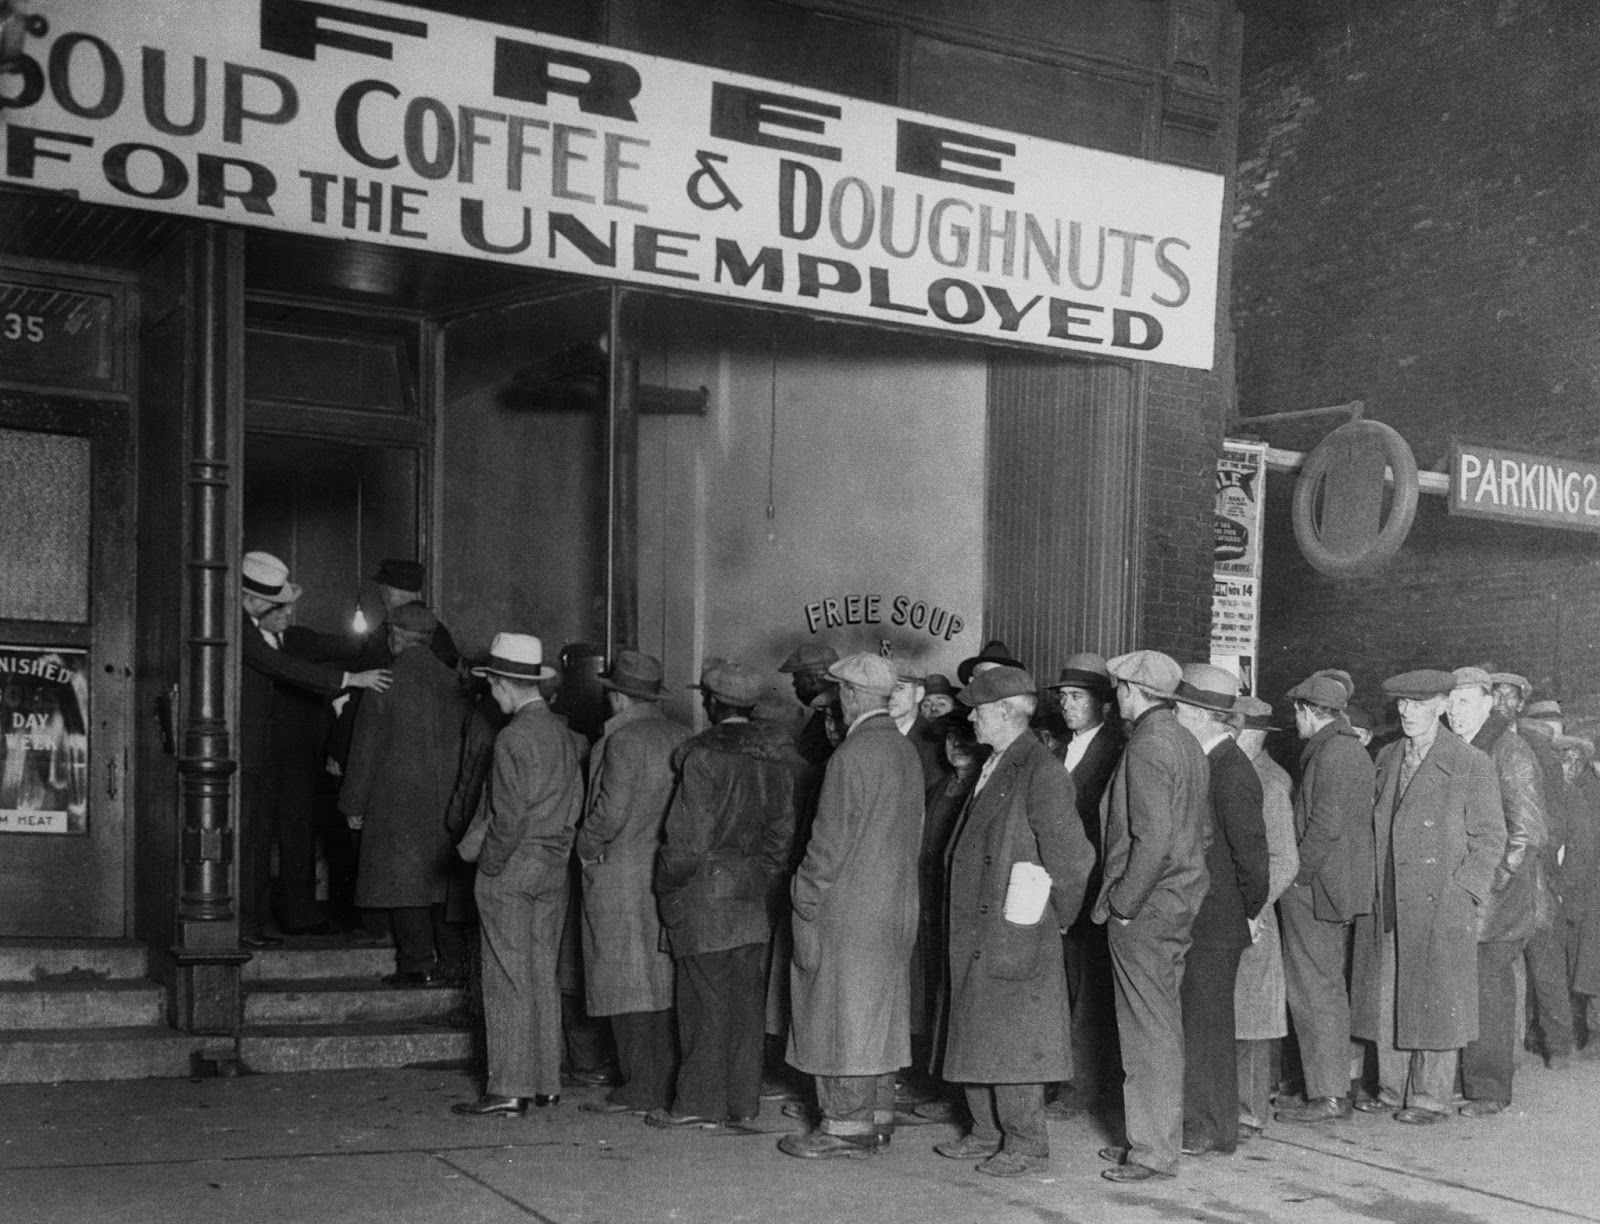 superb Facts About Soup Kitchens During The Great Depression Part - 7: Men in line at Al Caponeu0027s soup kitchen, Chicago 1930 [1600x1224]